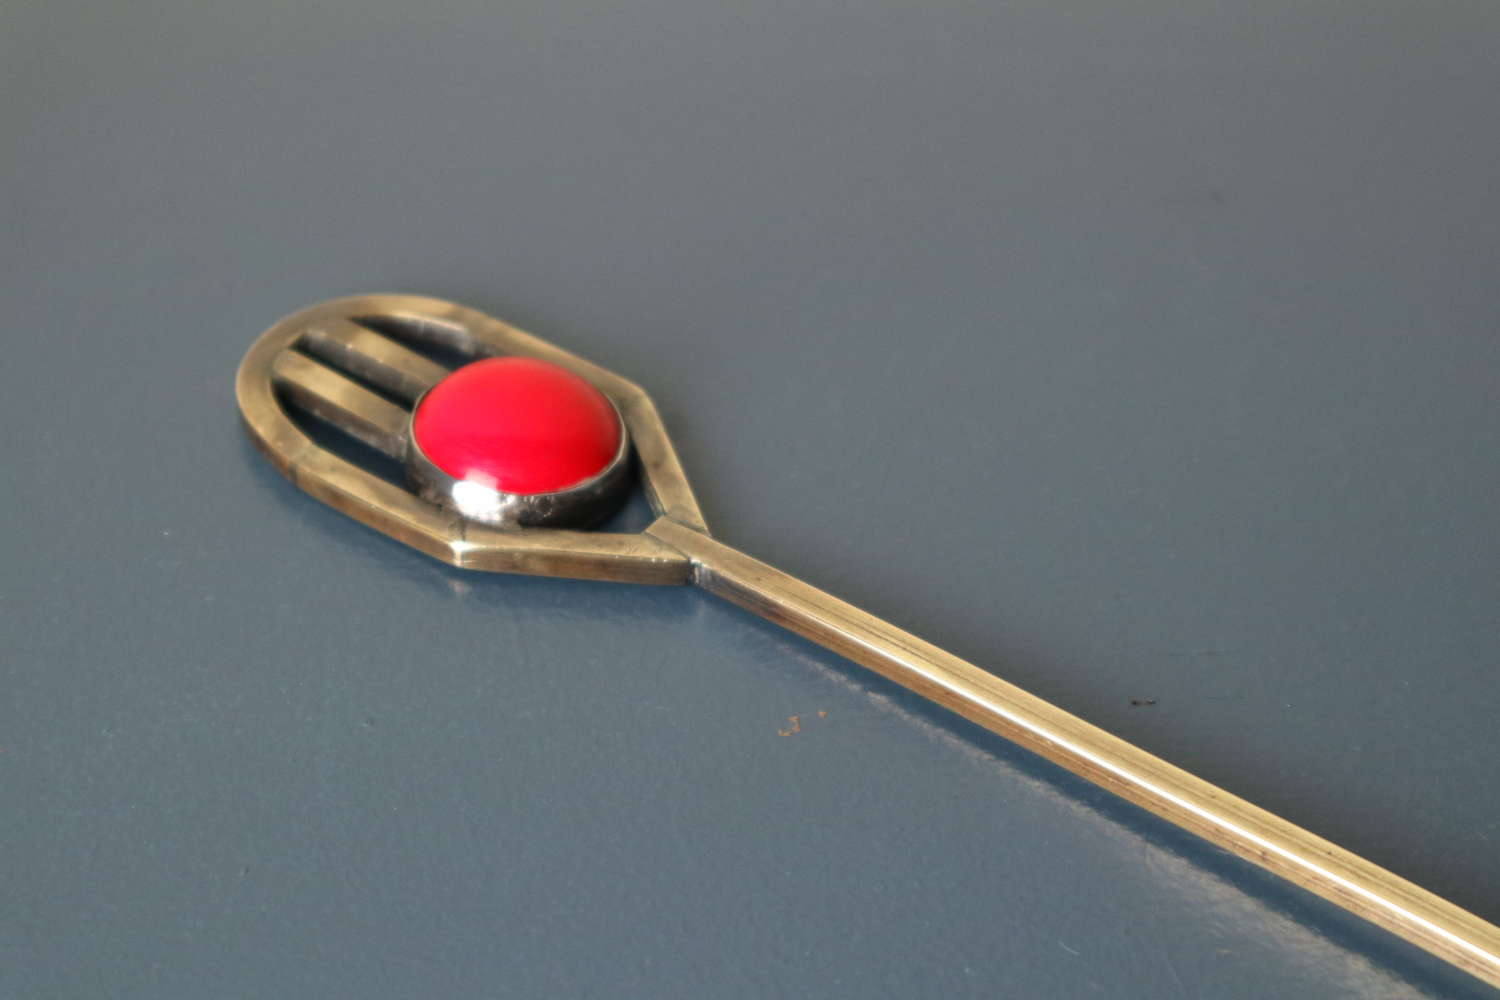 Art Deco brass & red bakelite cabochon geometric toasting fork c.1925.